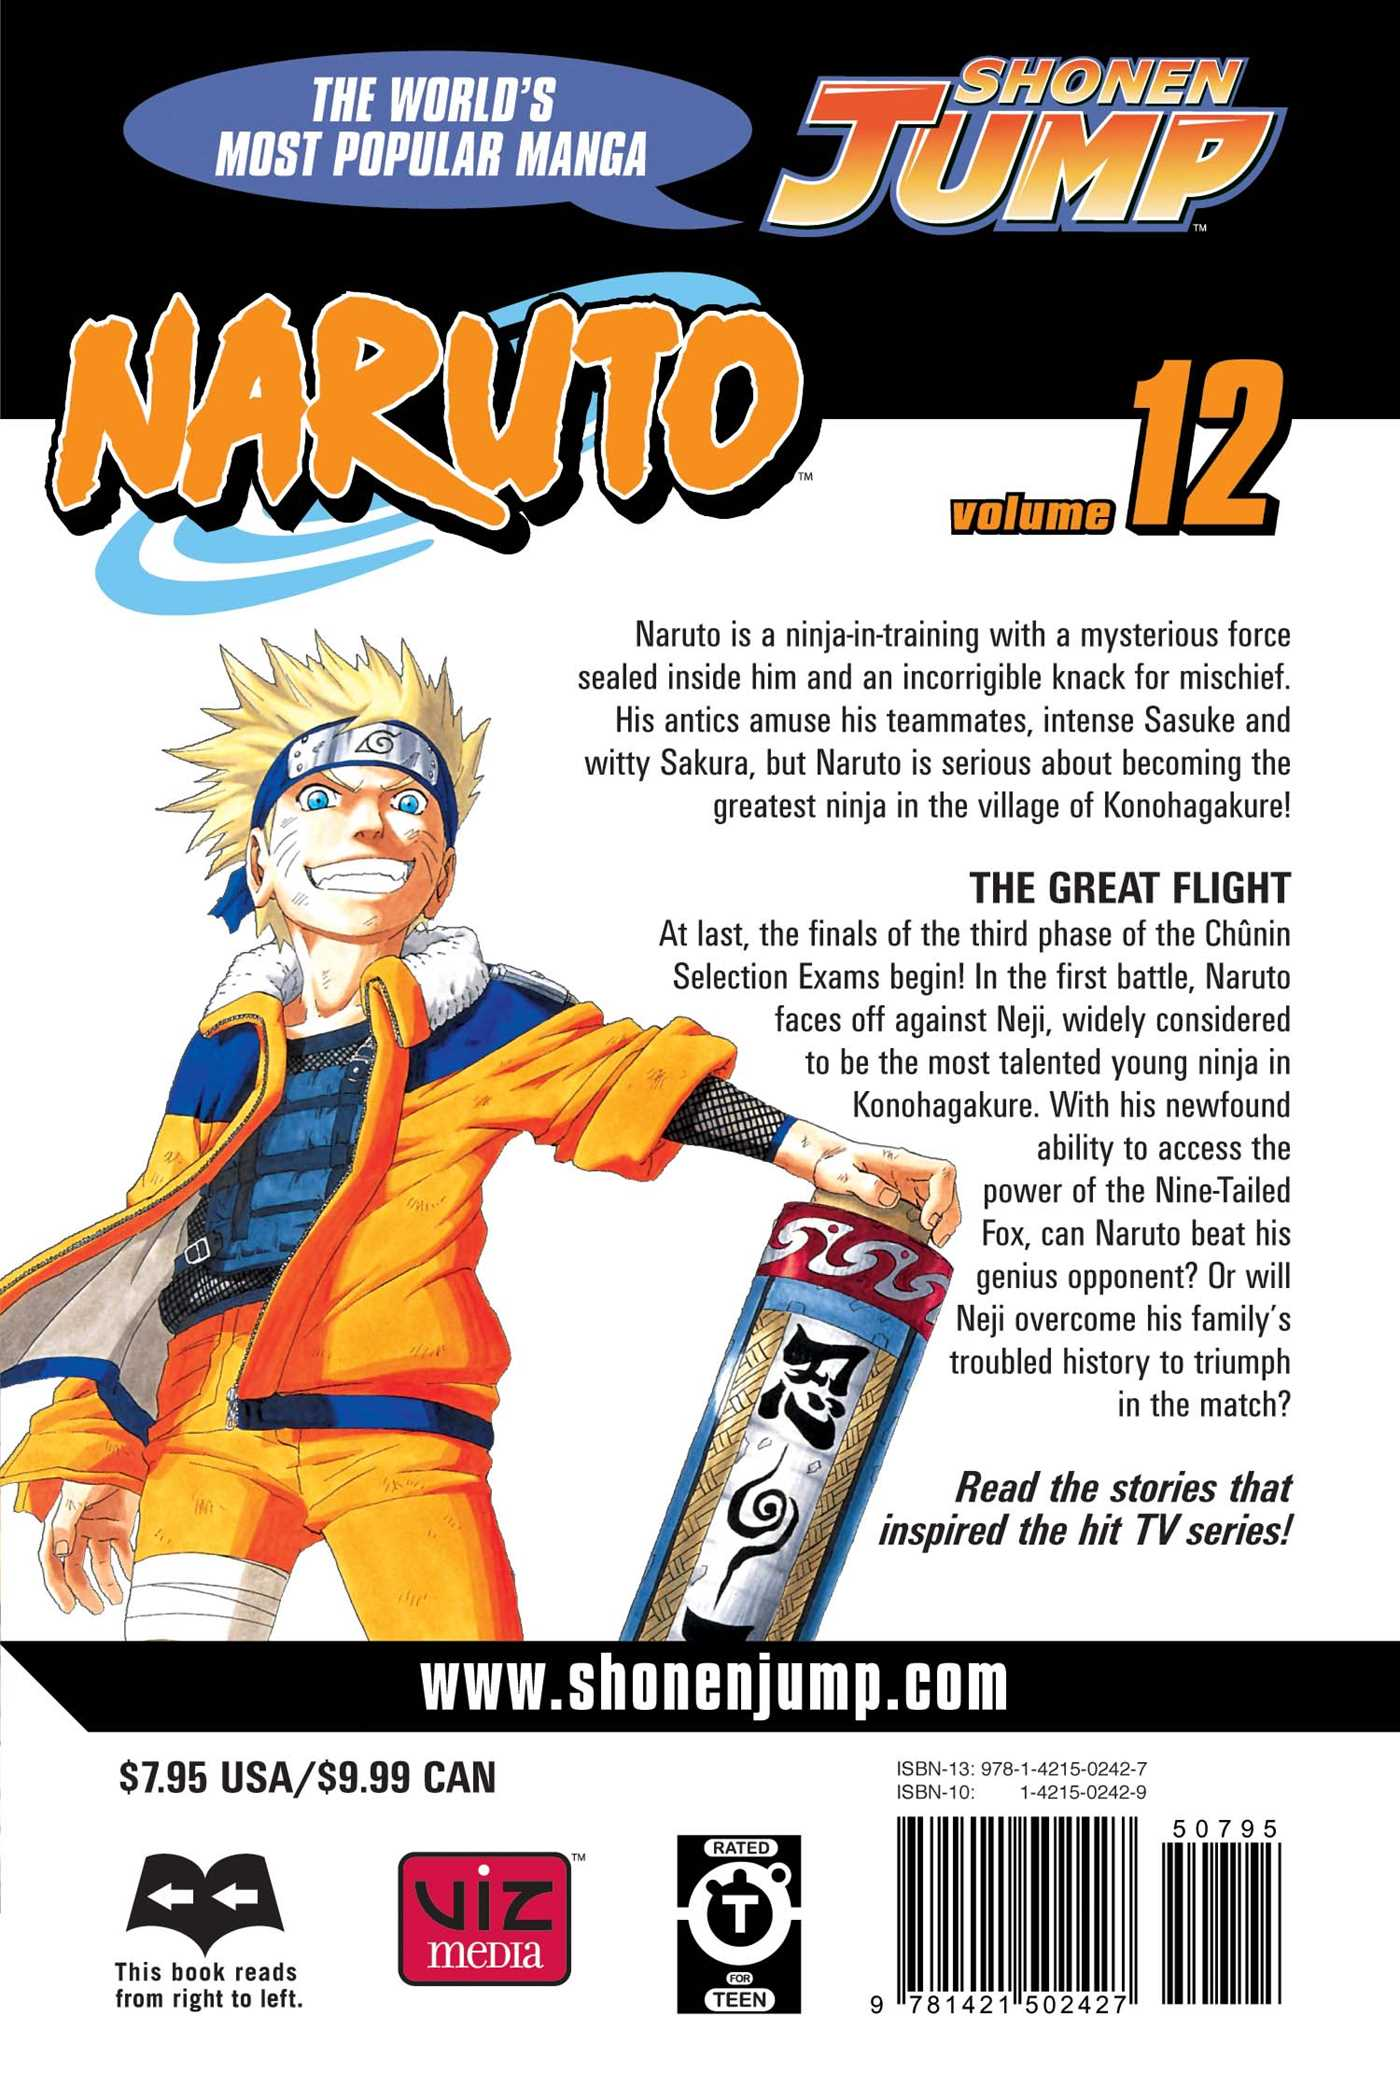 Naruto-vol-12-9781421502427_hr-back